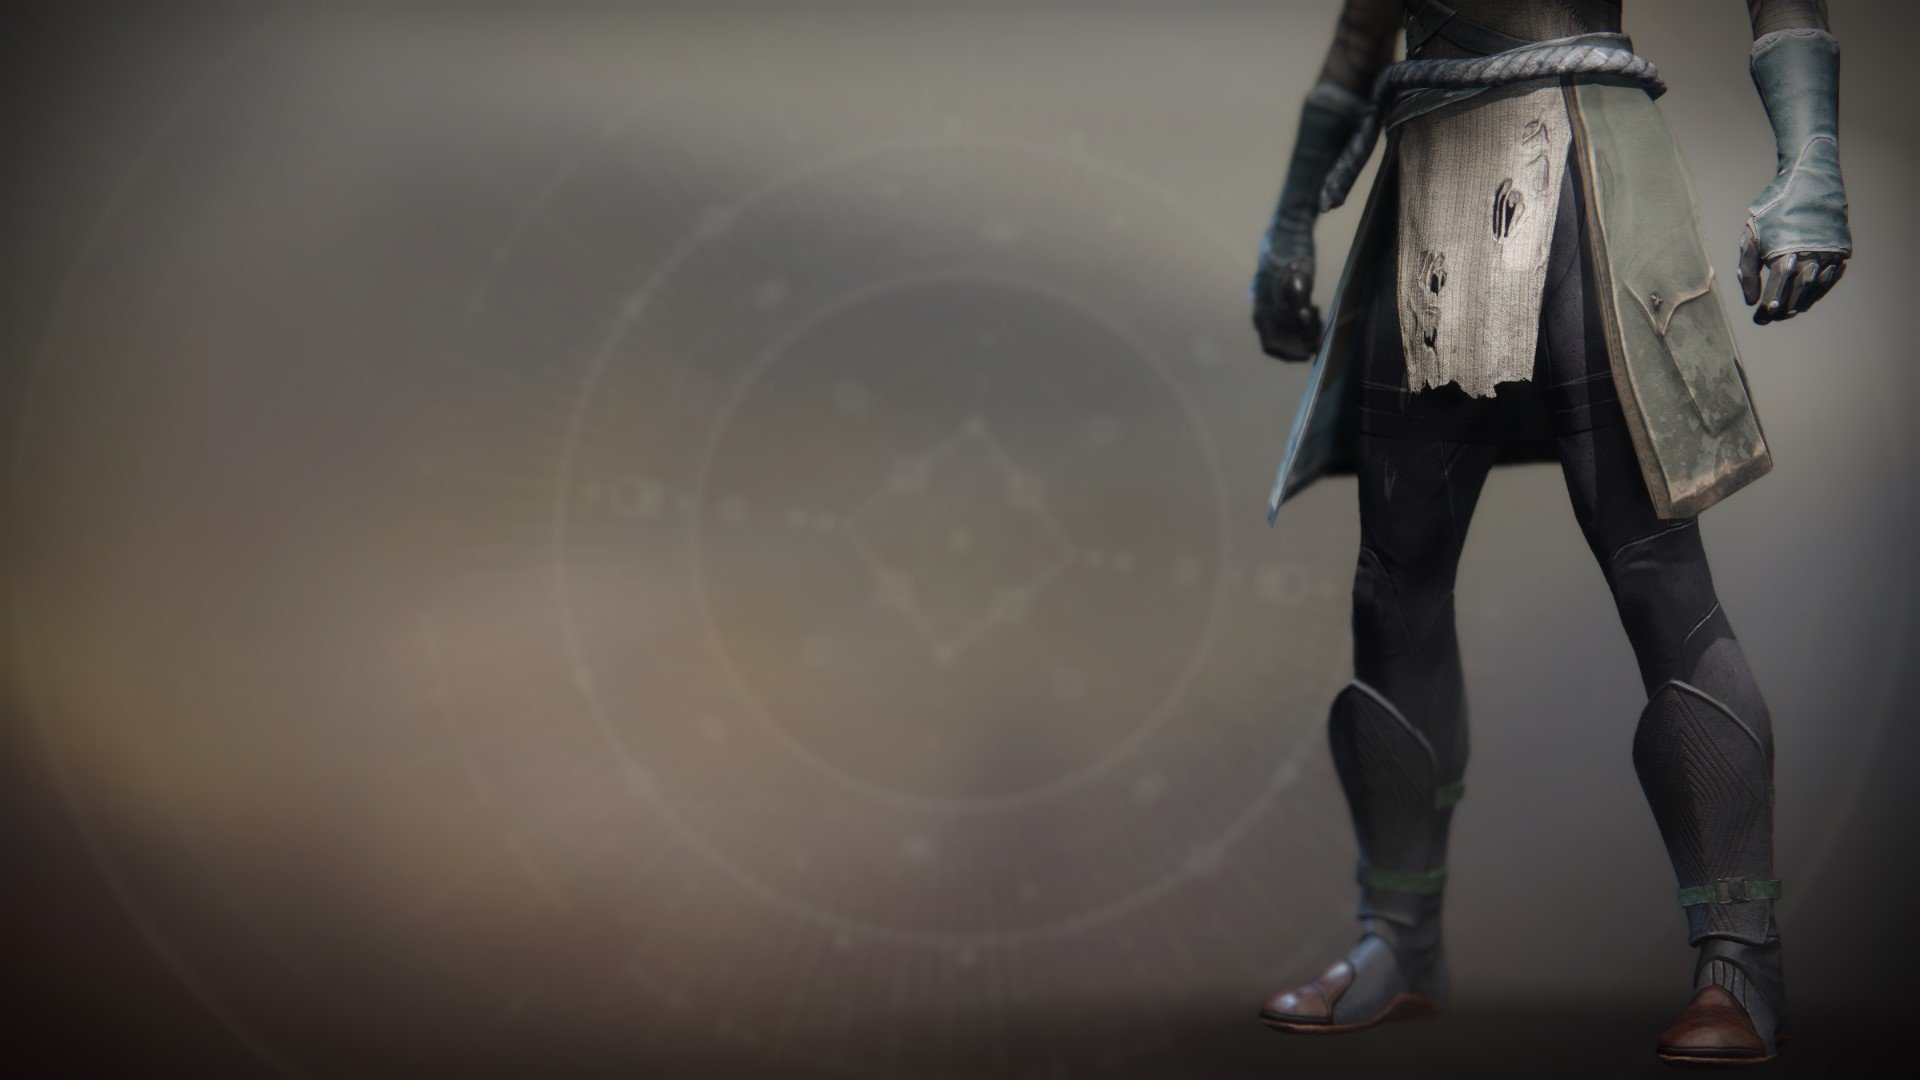 An in-game render of the Iron Fellowship Boots.